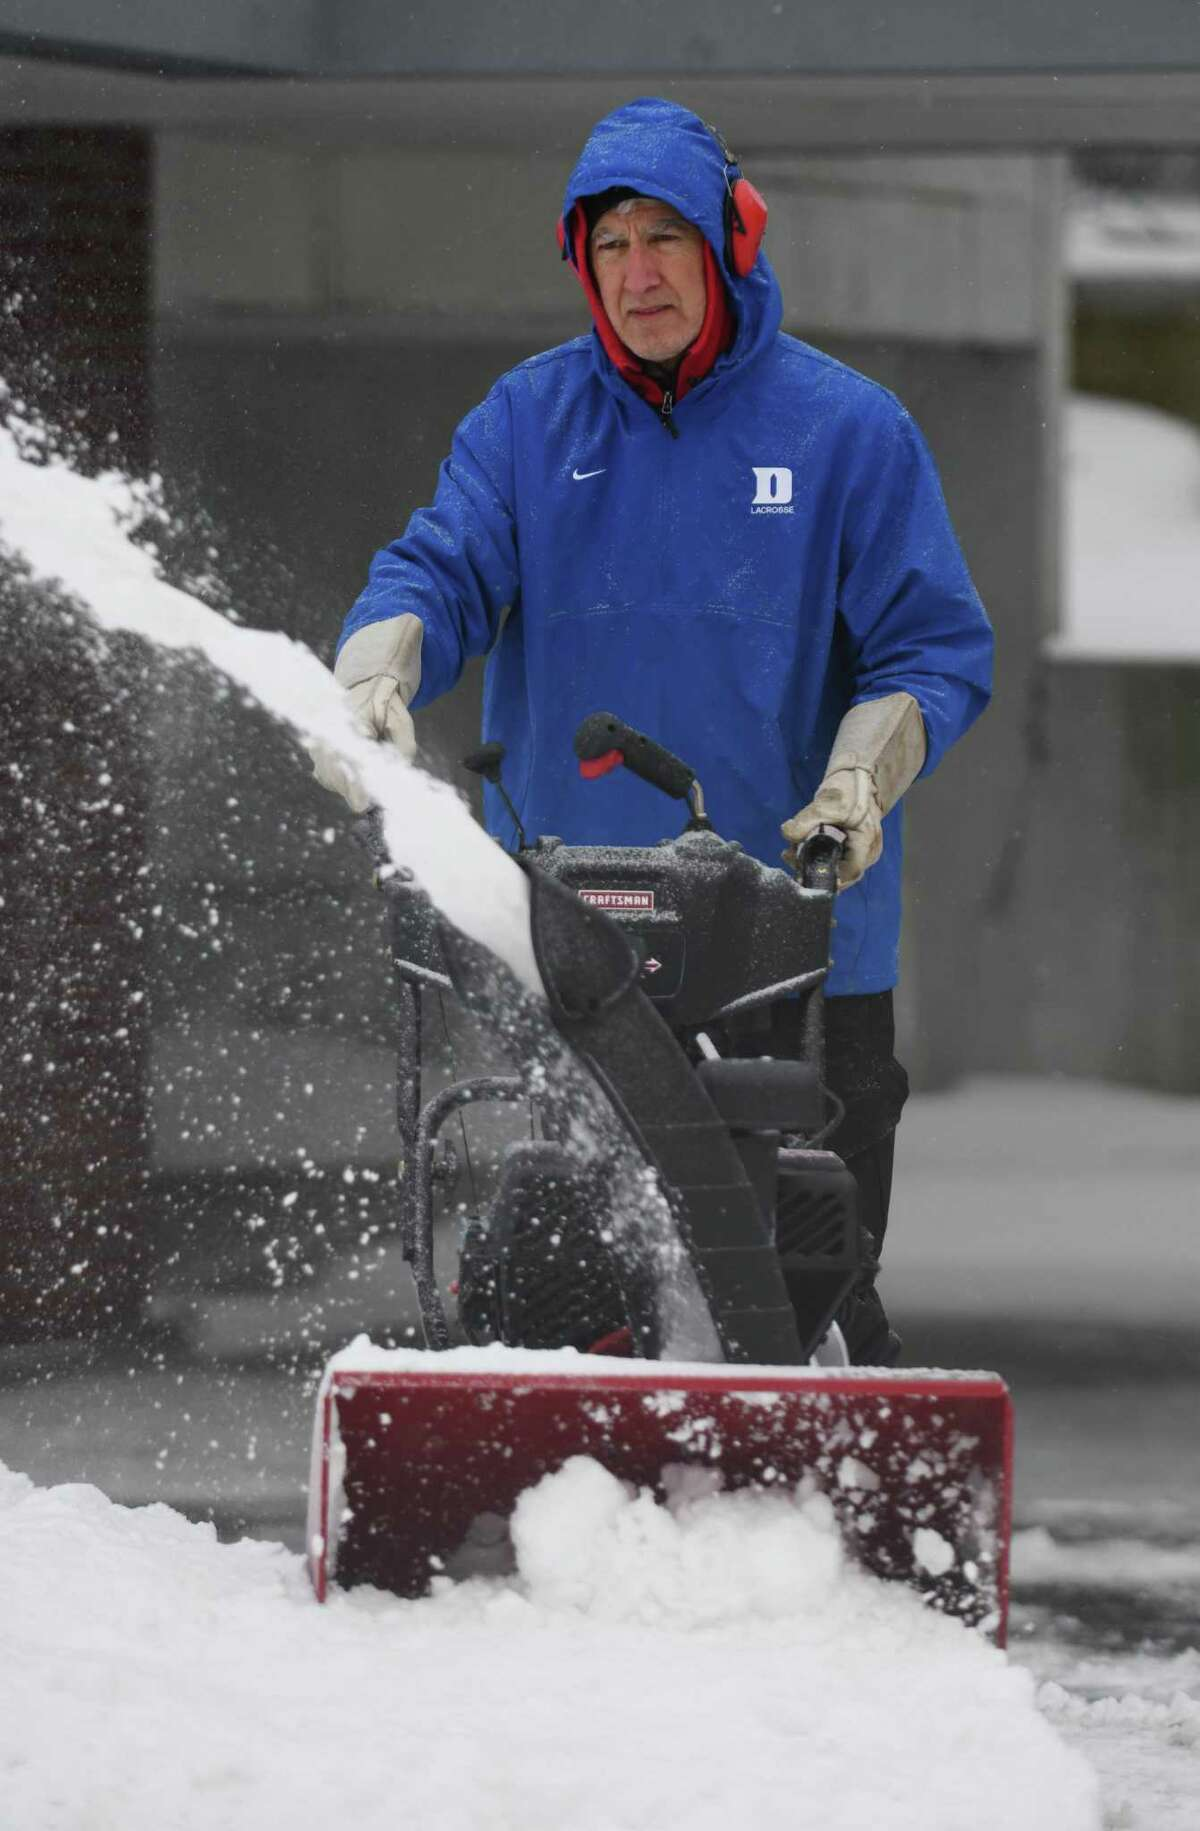 Mario Alberto uses a snowblower to clear snow from a driveway.